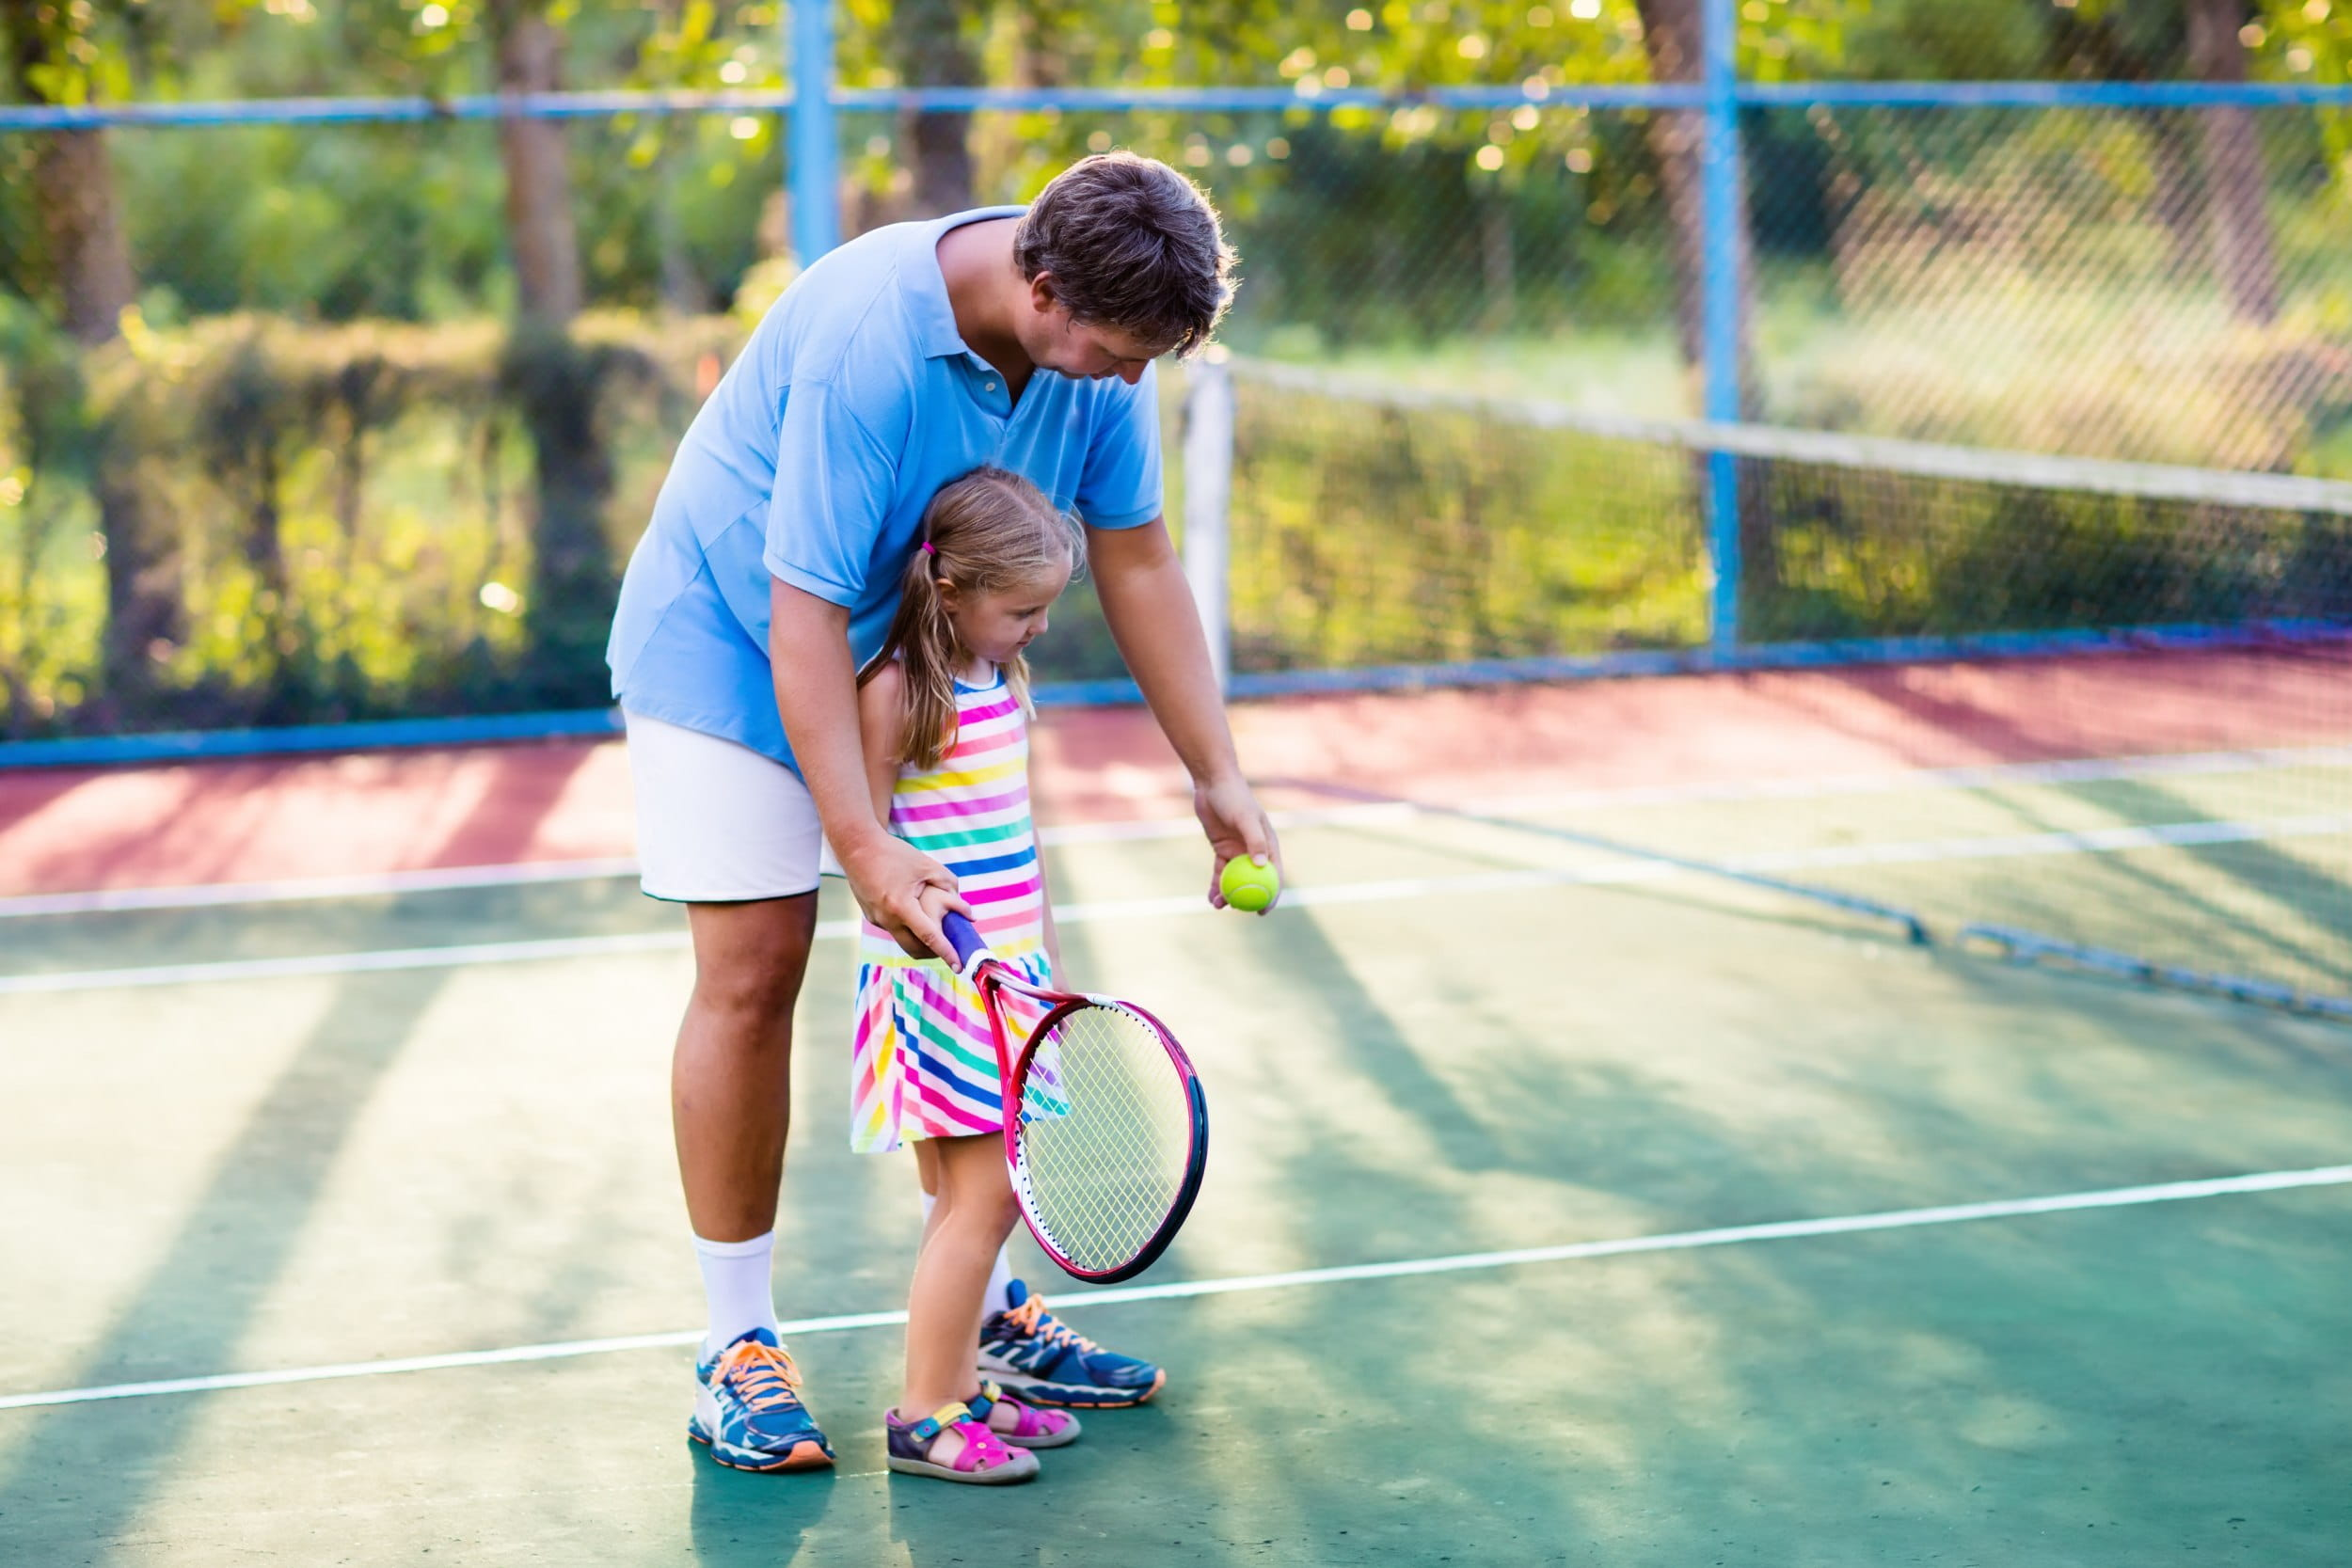 Family playing tennis on outdoor court ((c) famveldman – stock.adobe.com)